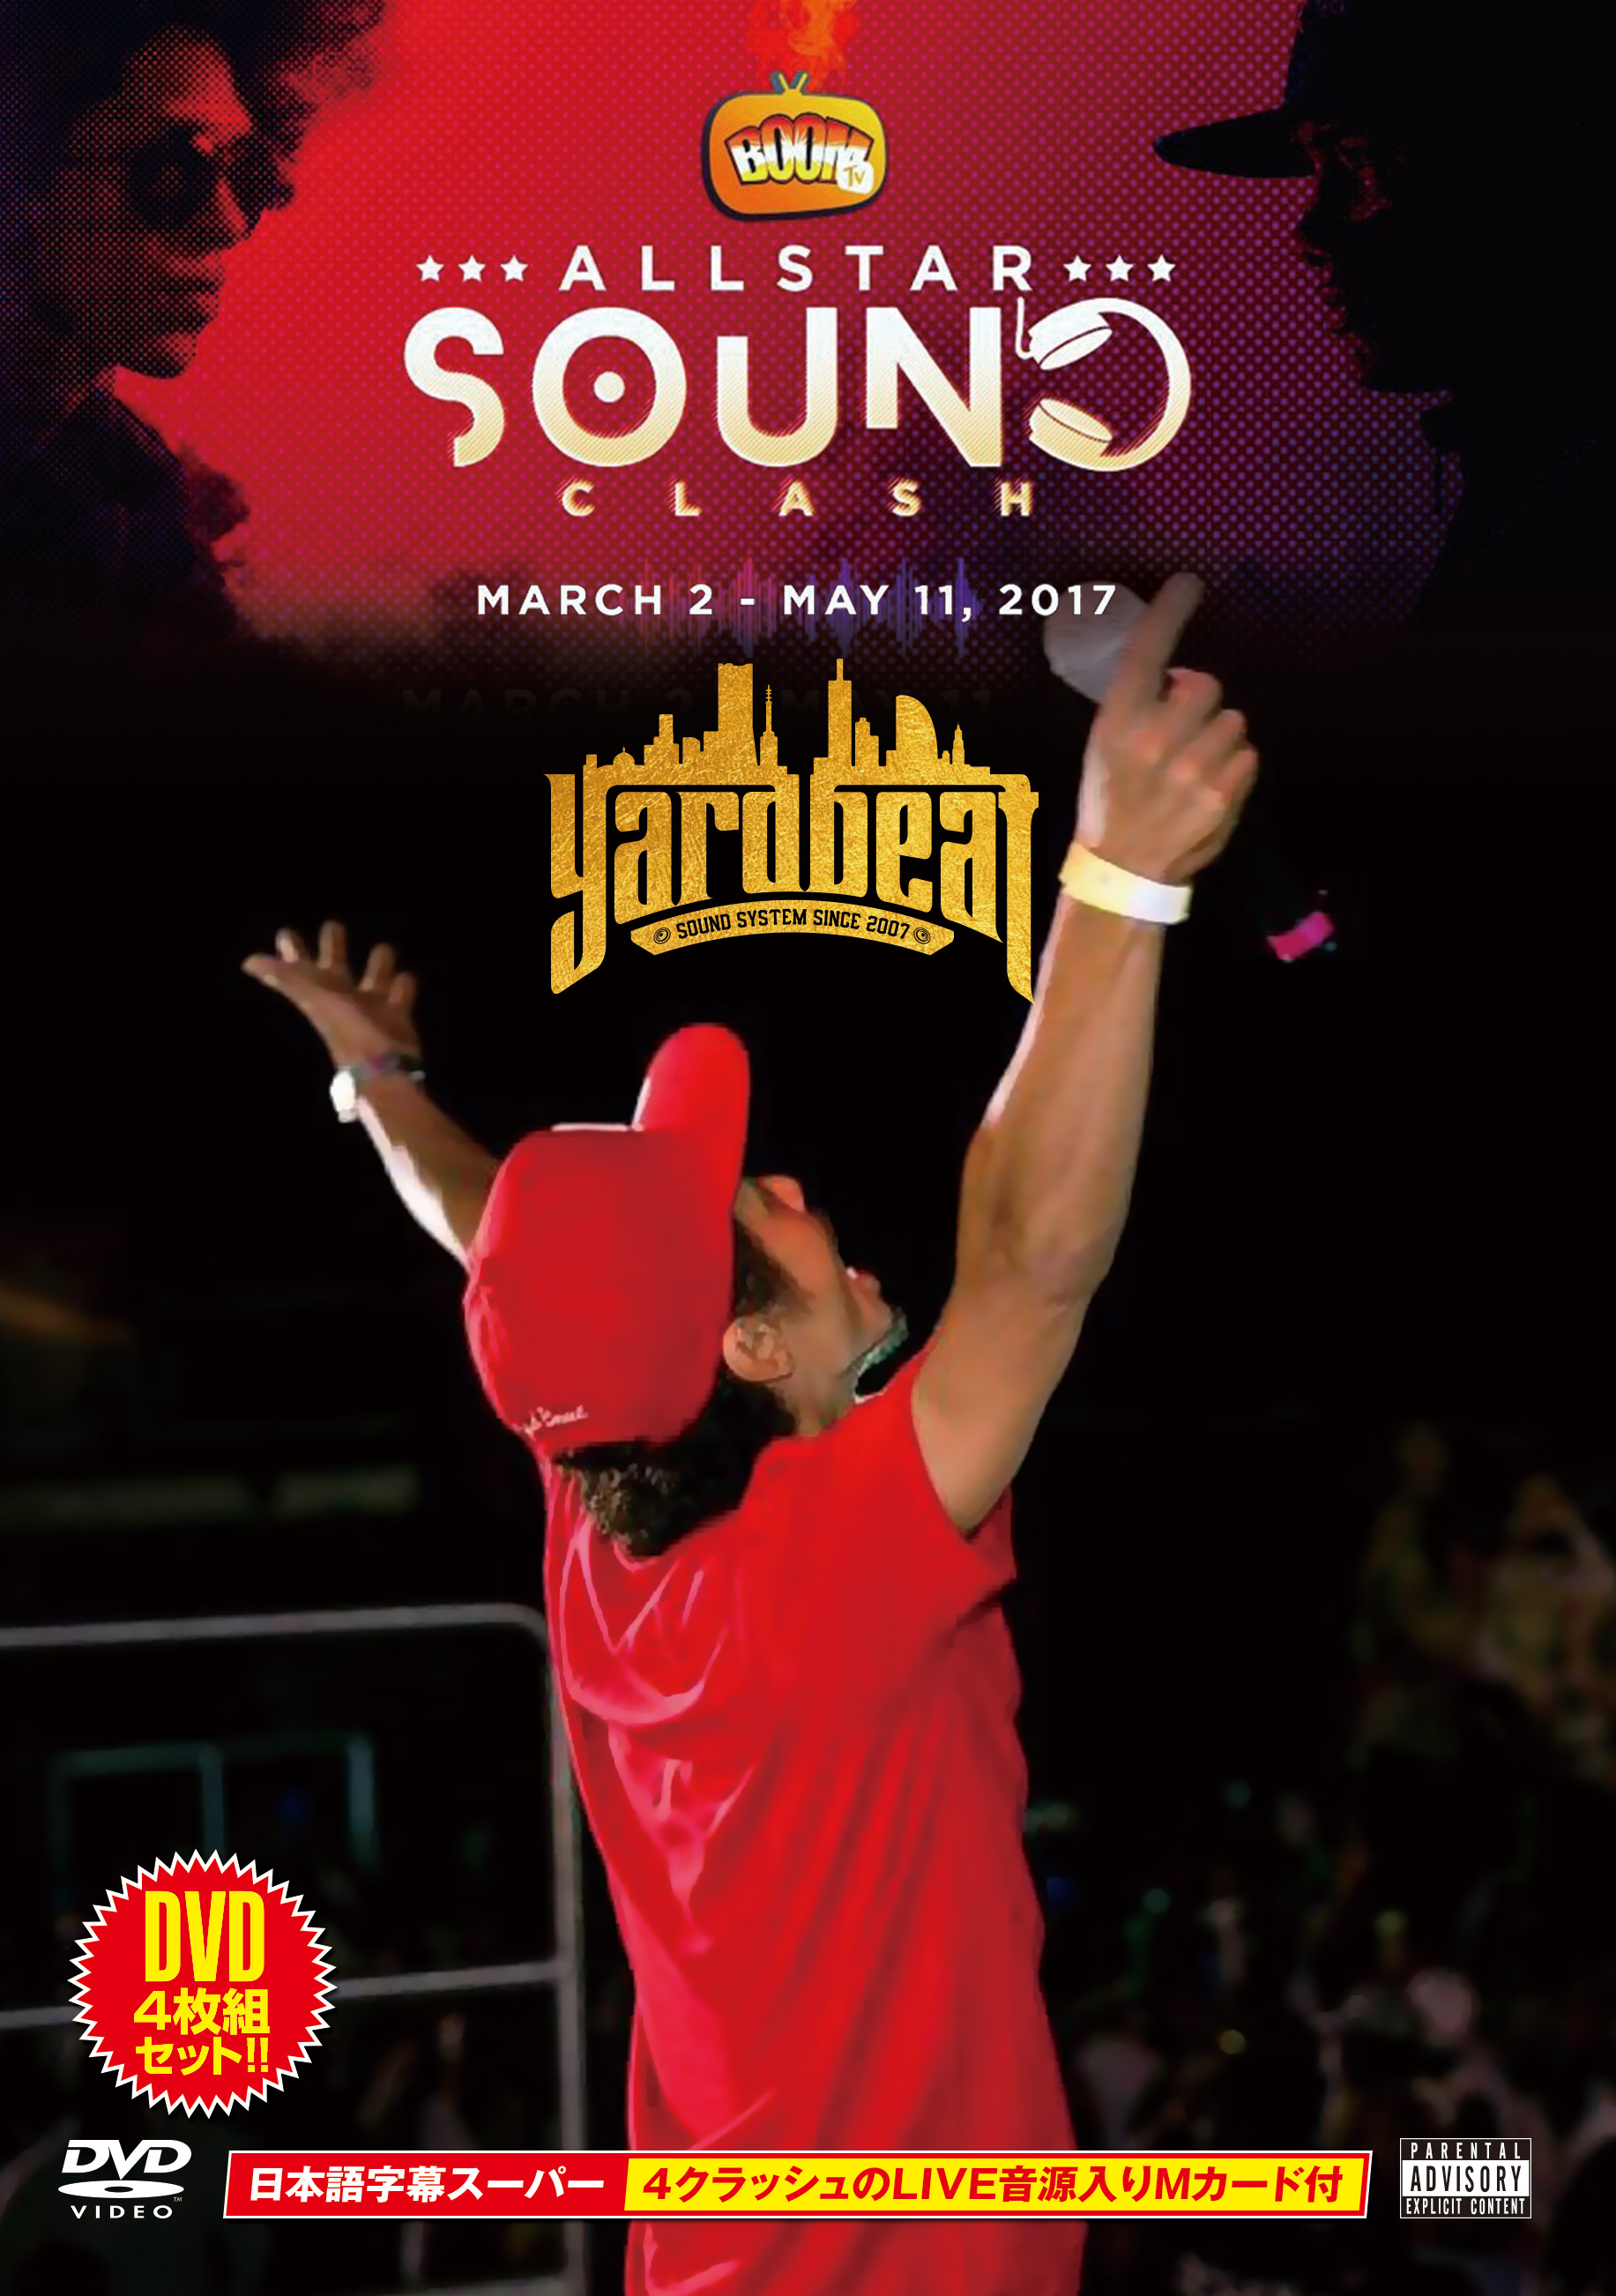 YARD BEAT / BOOM ALL STAR SOUND CLASH (4枚組DVD)